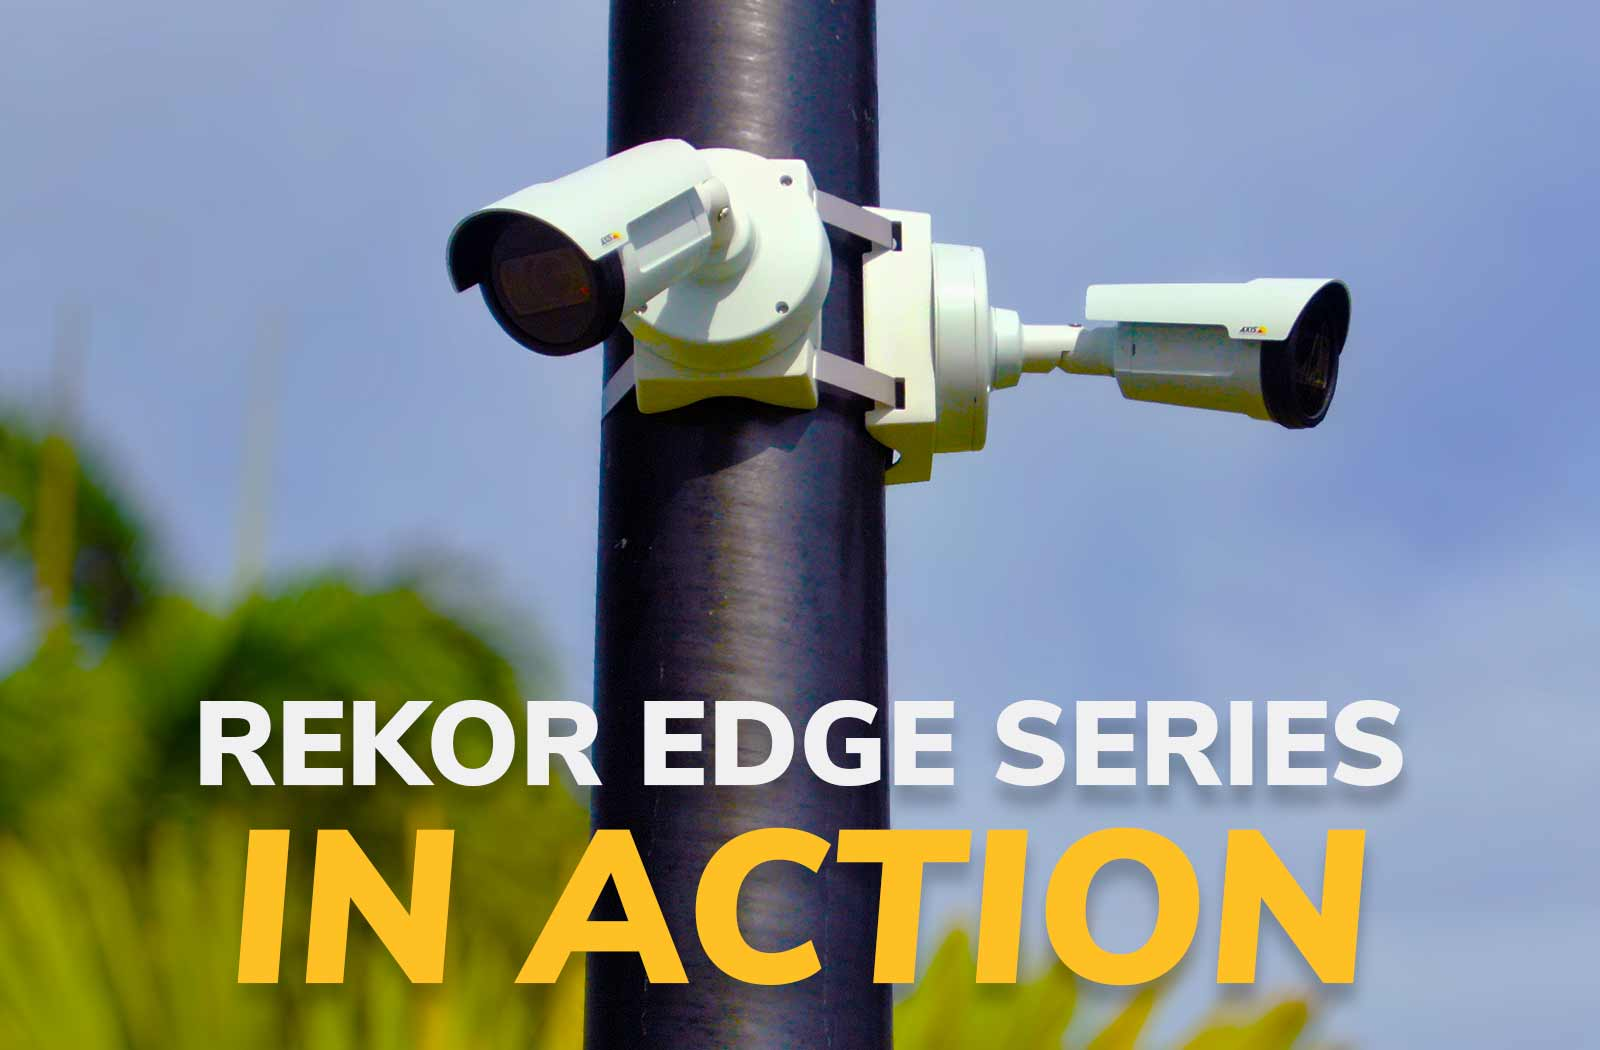 Rekor Edge Series in Action video thumbnail